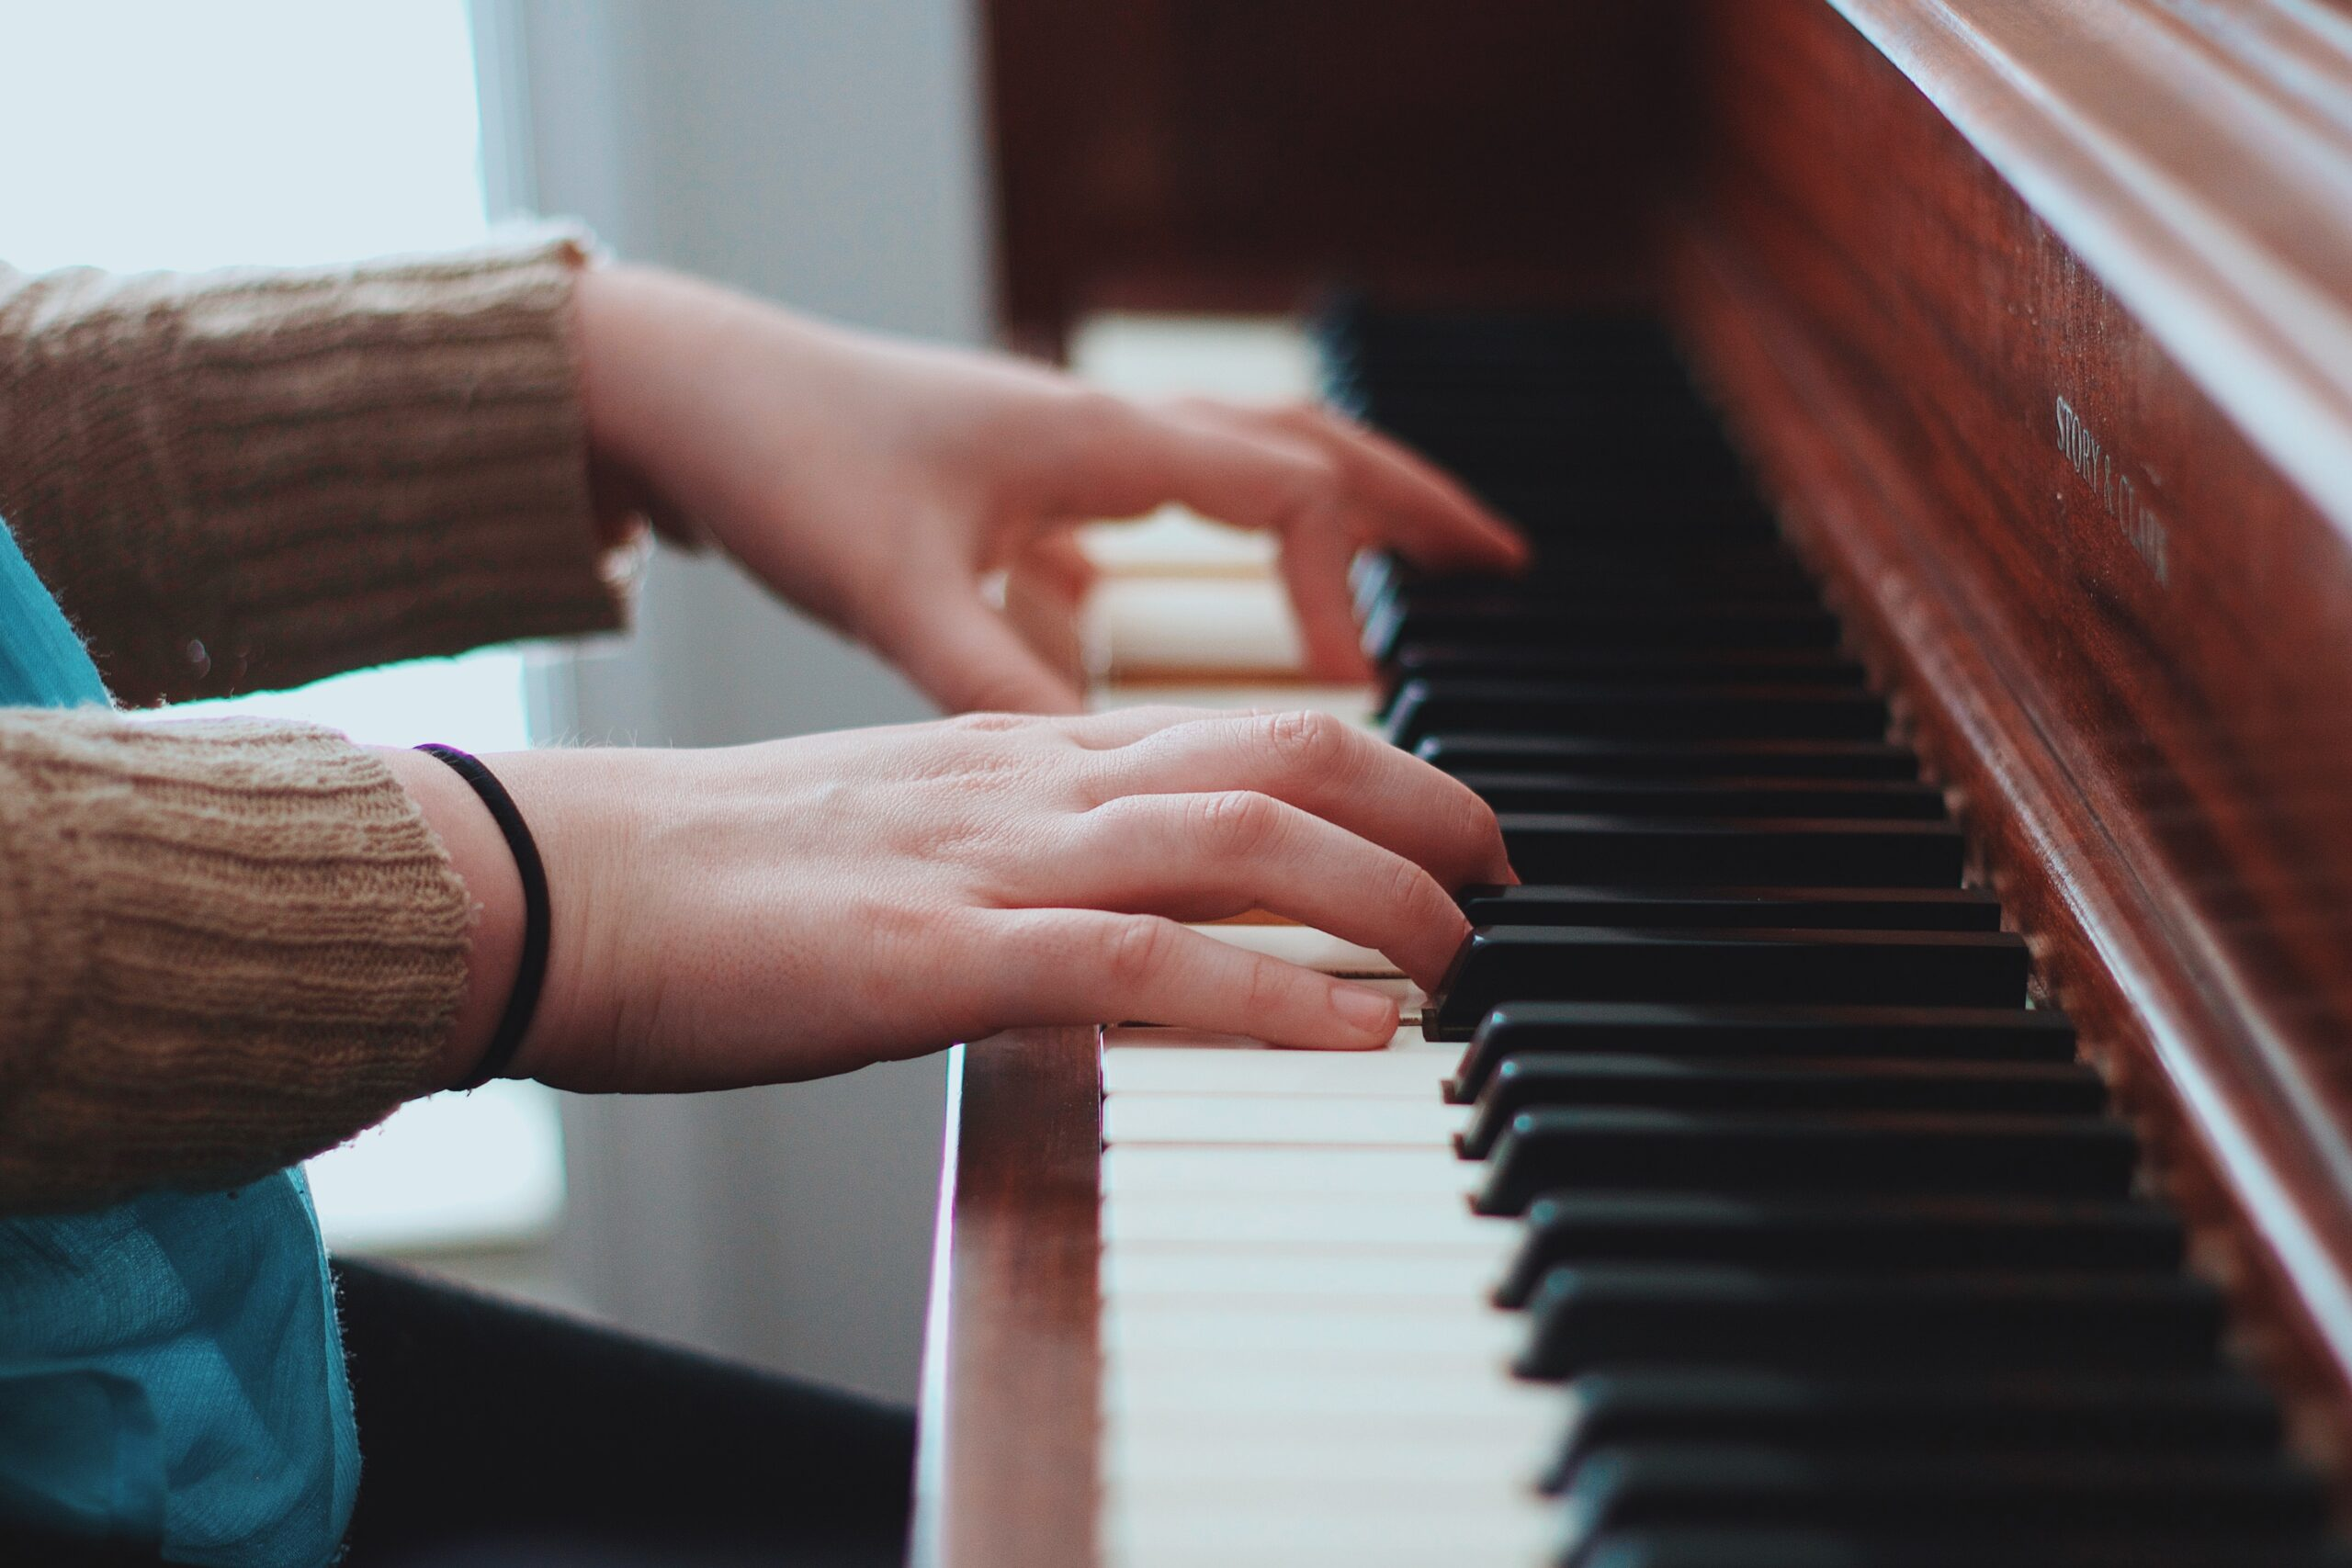 Music To The Soul | A new post by Lorrie Morales